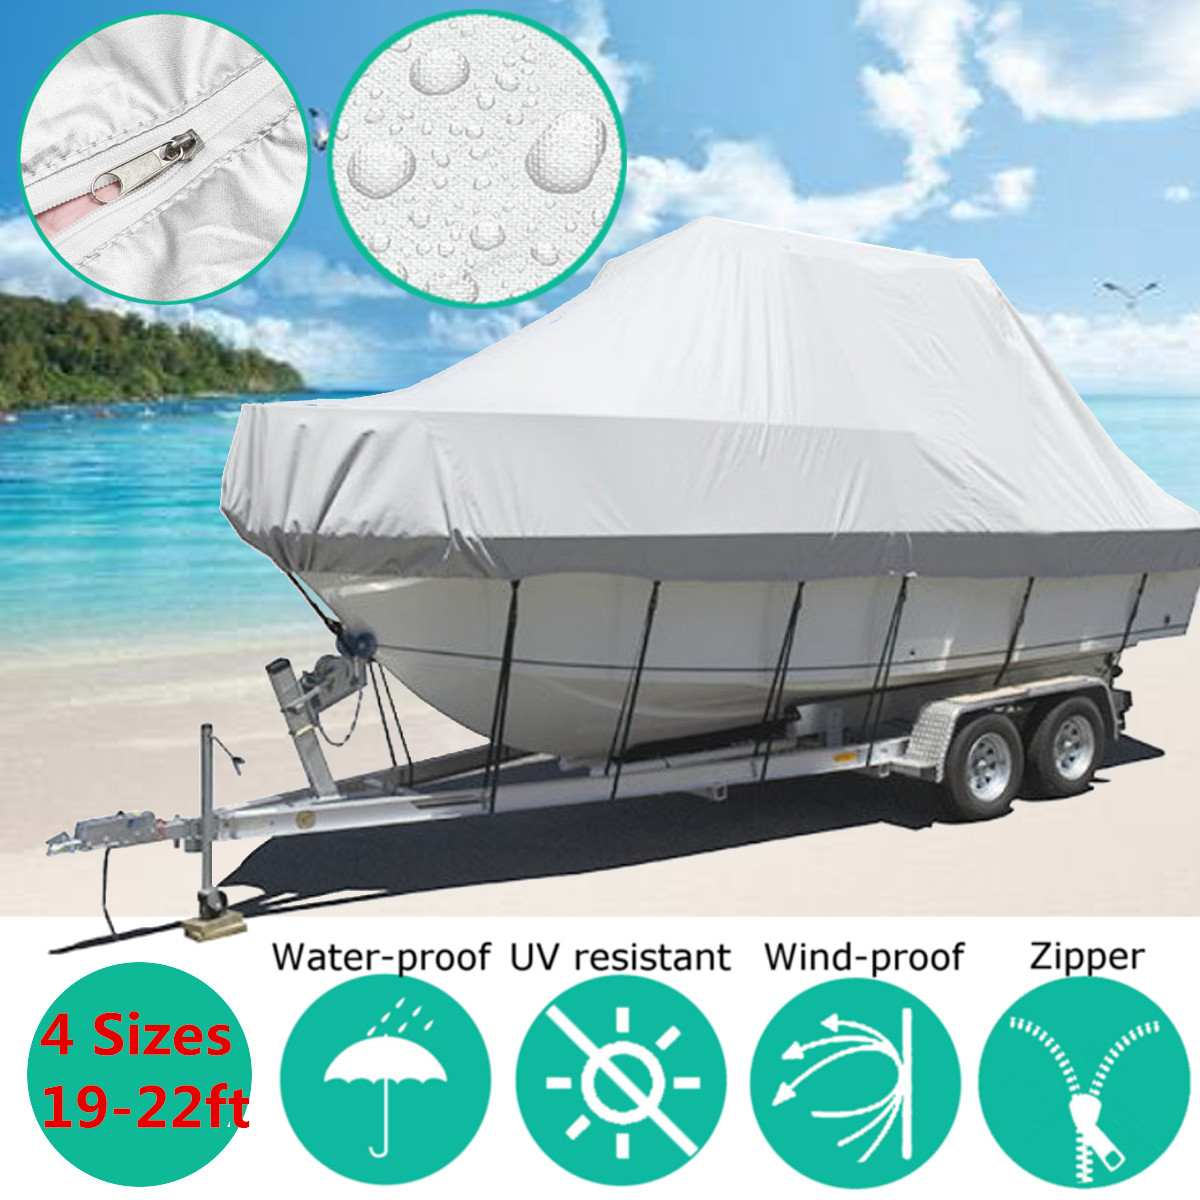 22-19ft 6.7-5.8m Boat Cover Marine Boat Yacht New Design Premium Heavy Duty 600D Trailerable Jumbo Boat Cover